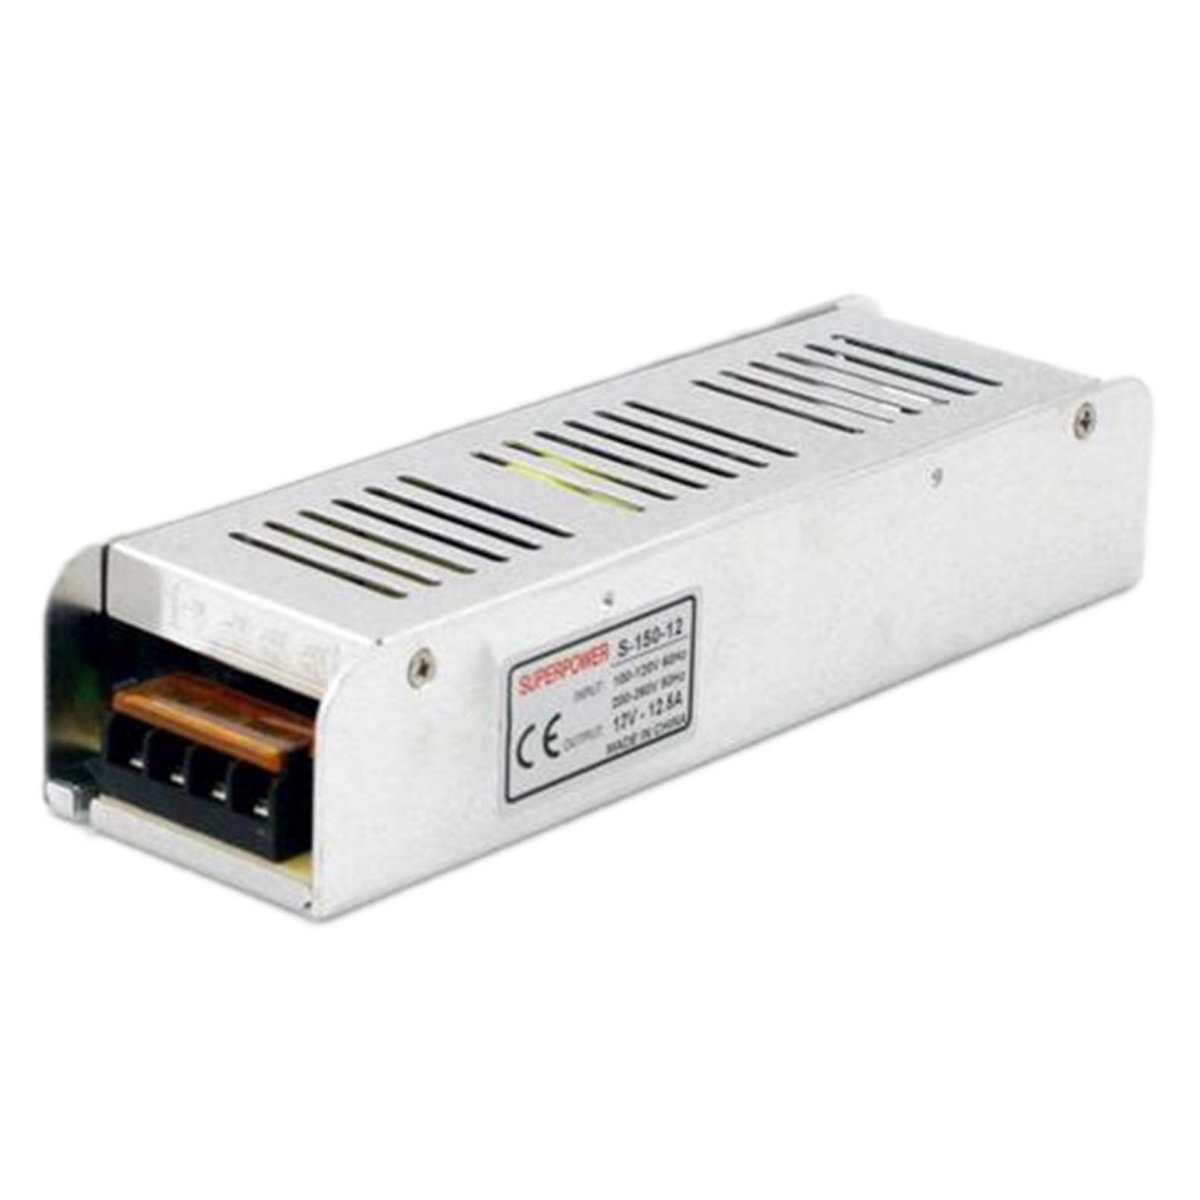 Switching Power Supply 12V 12.5A 150W Suitable for LED Strip With Short Circuit